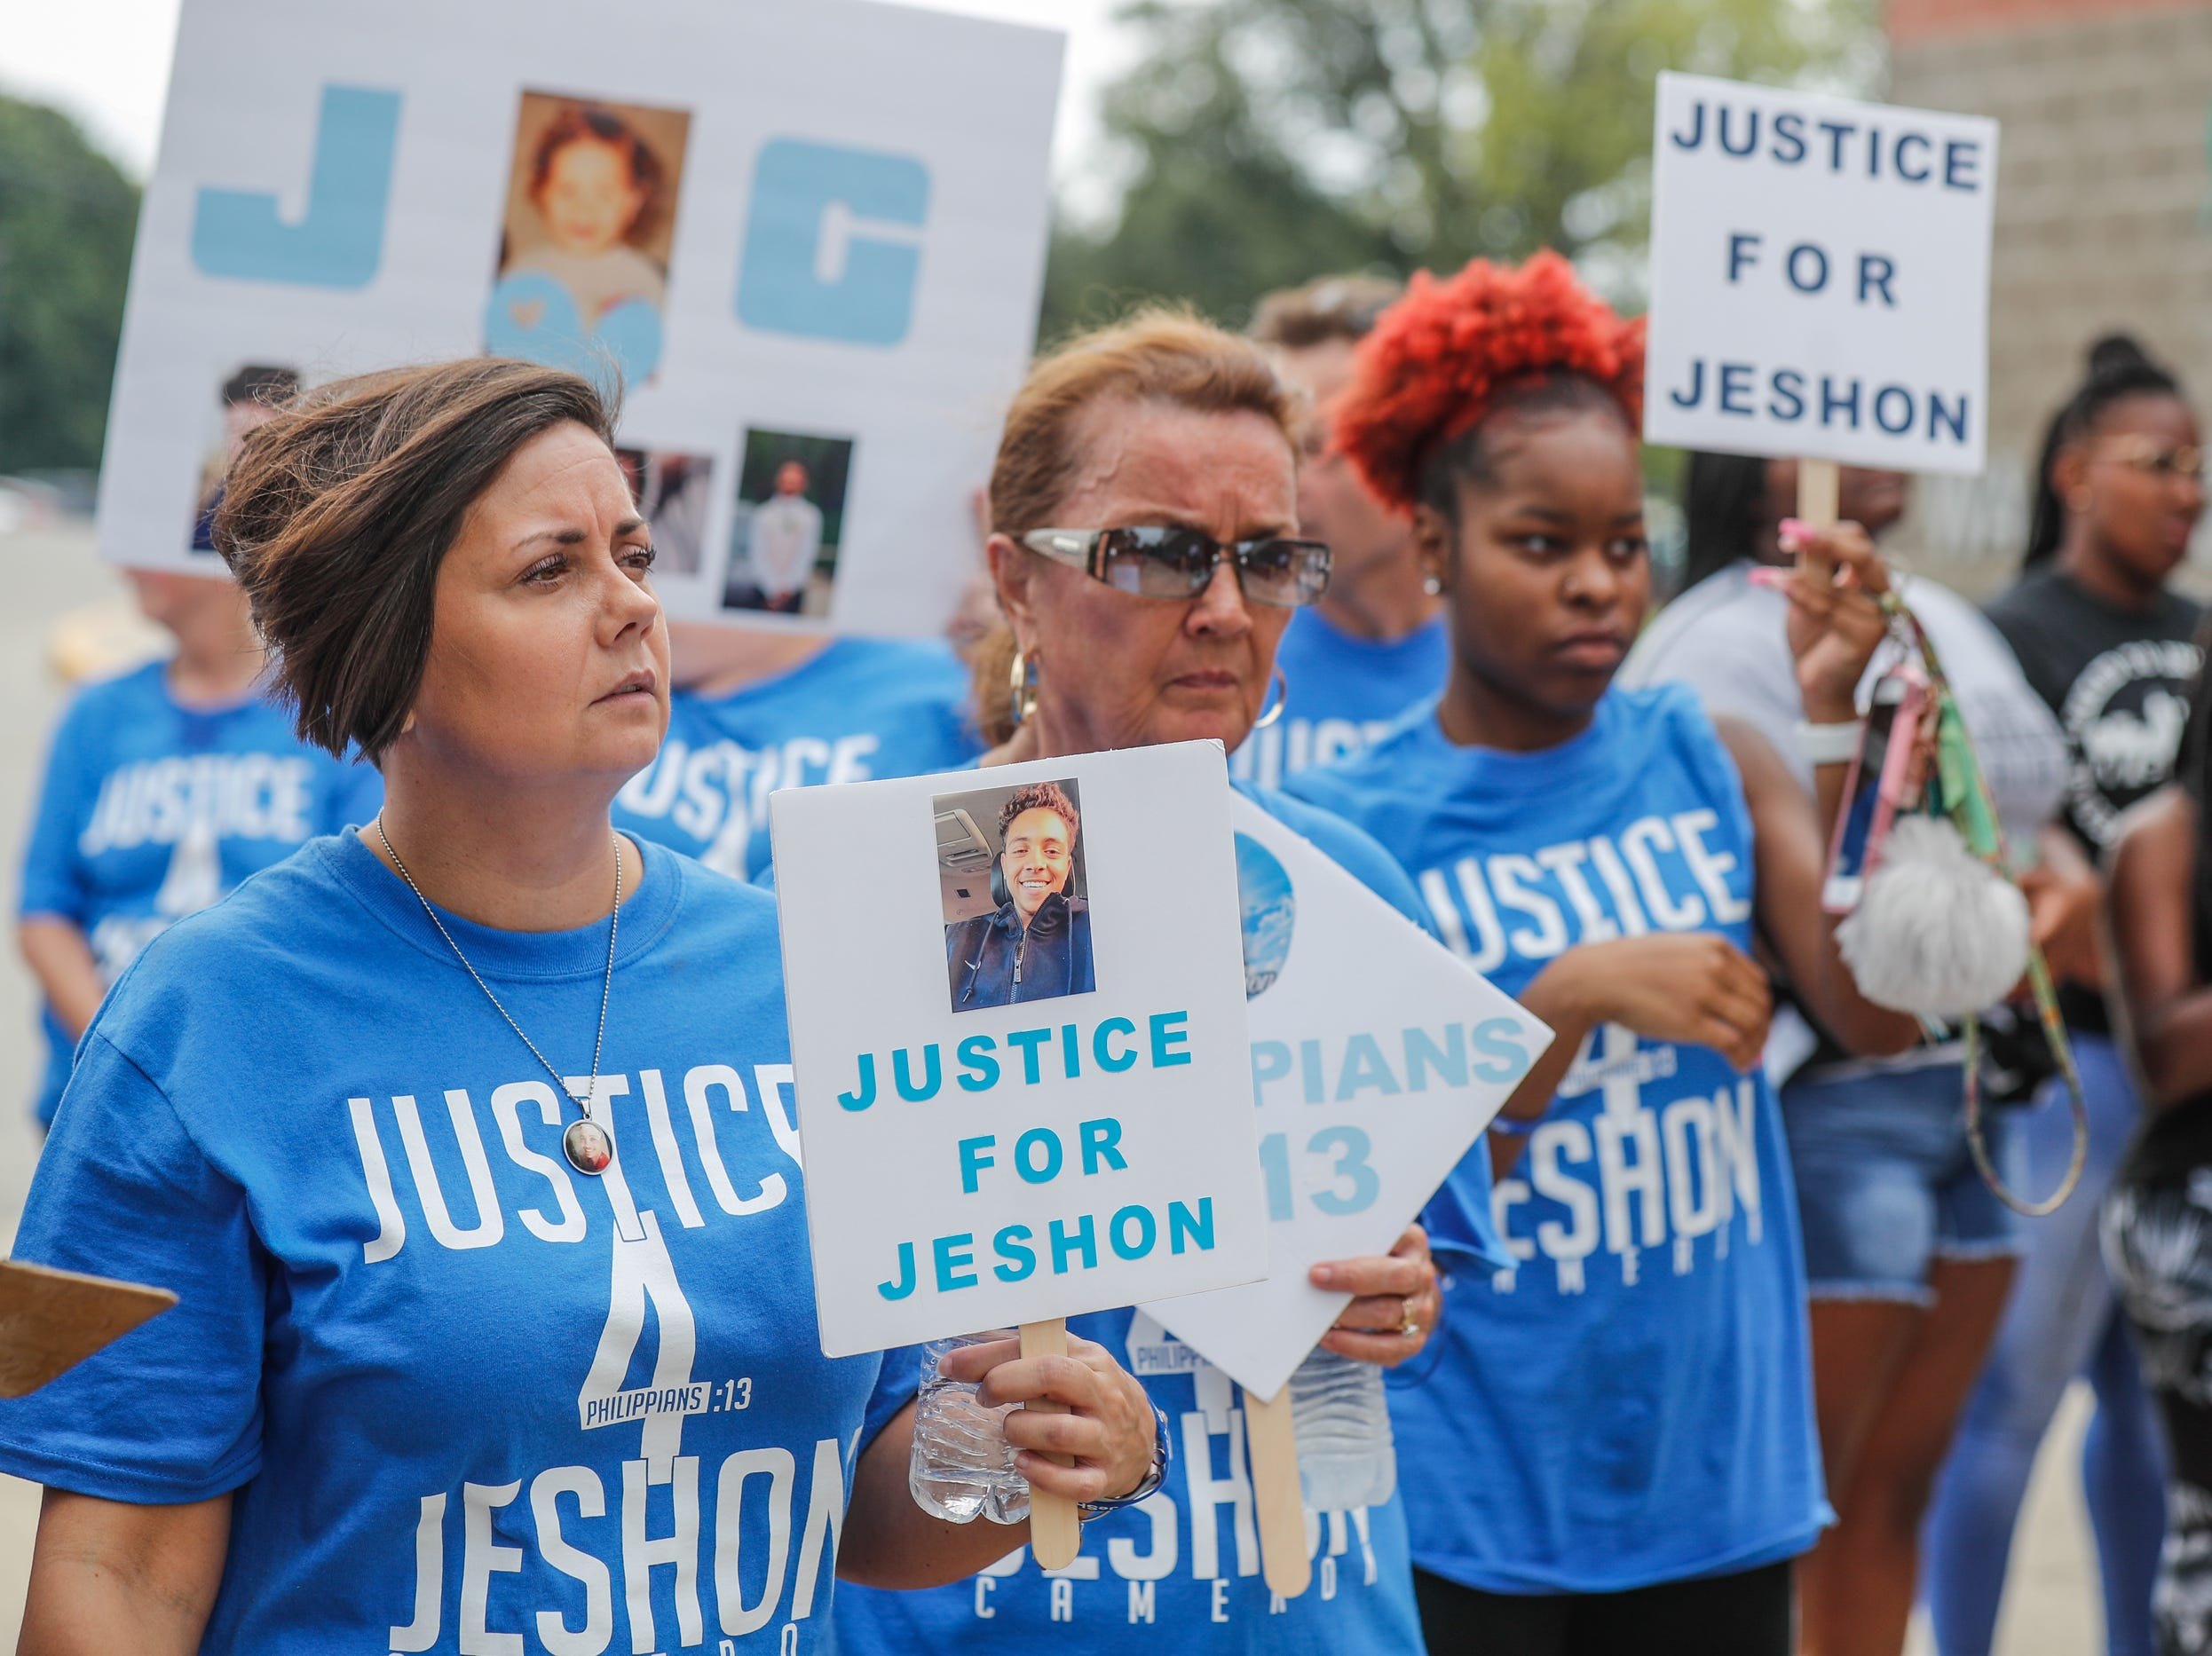 "Jennifer Cameron, left, the mother of JeShon Cameron who was killed in a July 16th shooting, attends the second annual 'We Live"" Peace Walk and Community Day to end youth violence at Washington Park on Saturday, Aug. 11, 2018. 'We Live,' which stands for 'Linked To Intercept Violence' was started by students from Warren Central High School in Indianapolis."